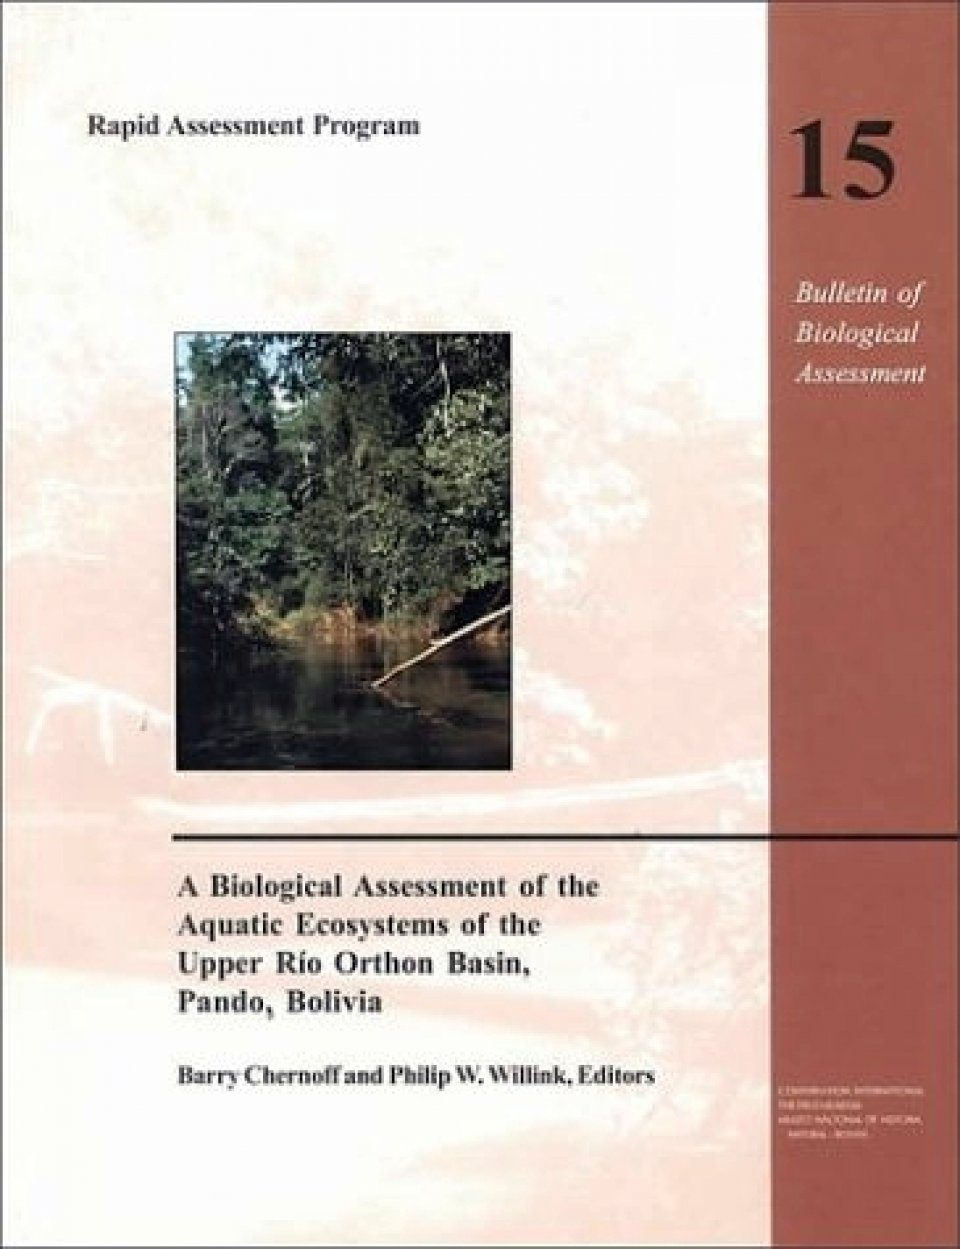 A Biological Assessment of the Aquatic Ecosystem of the Upper Rio Orthon Basin, Pando, Bolivia